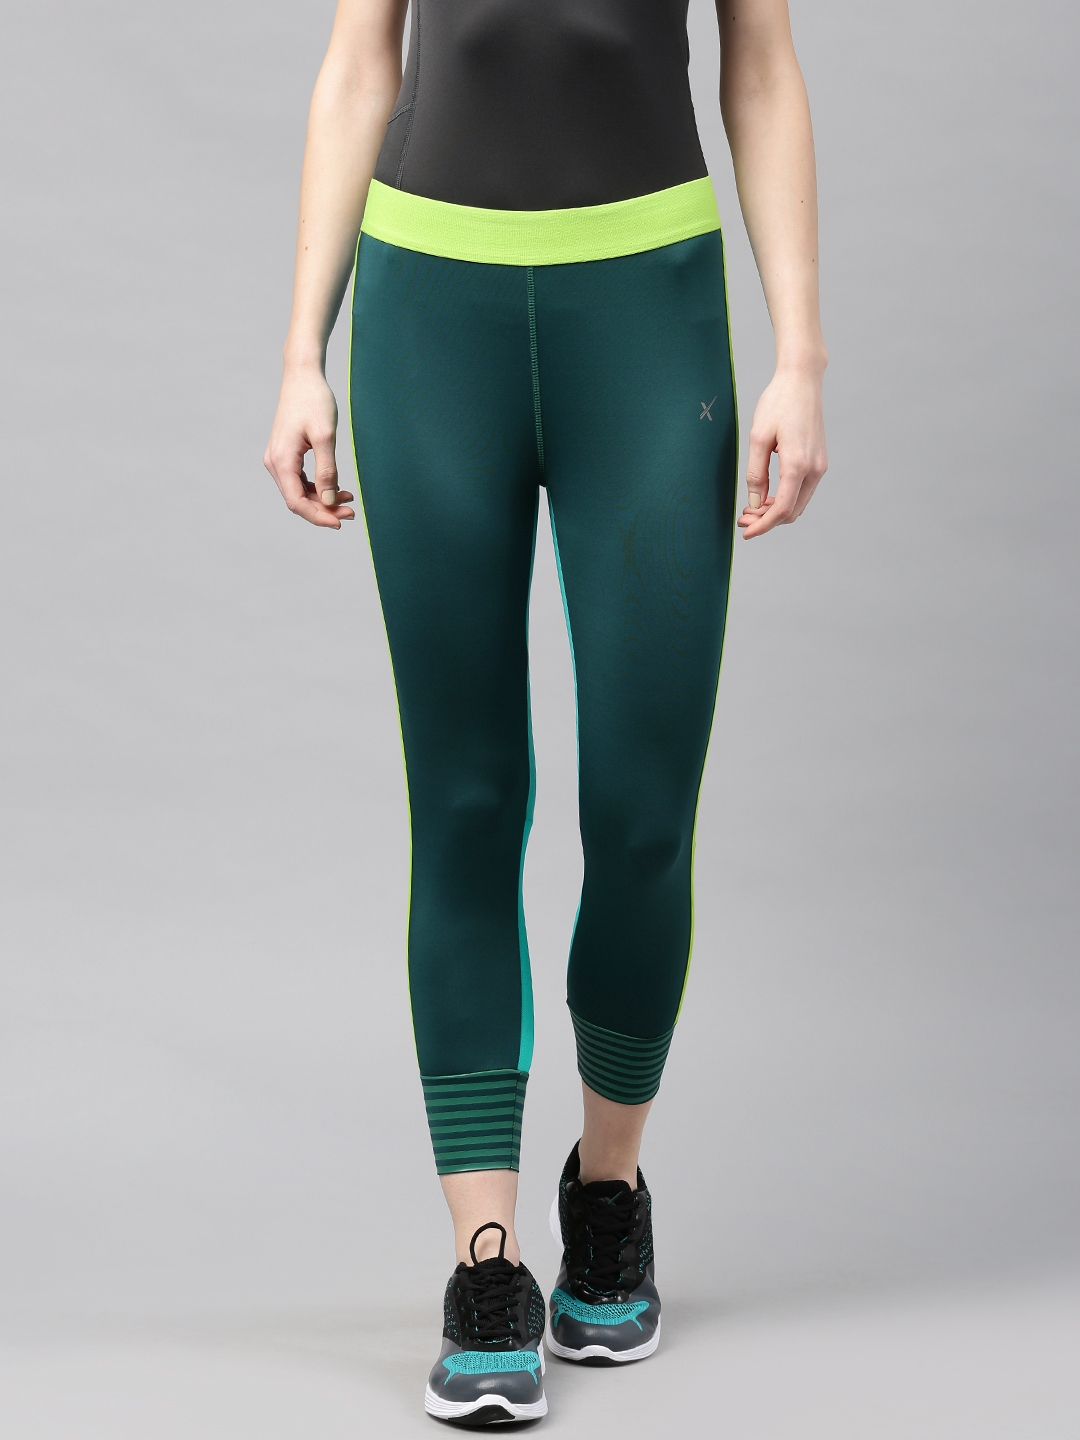 43975359a HRX by Hrithik Roshan Green   Teal Blue Active Training RAPID-DRY Tights